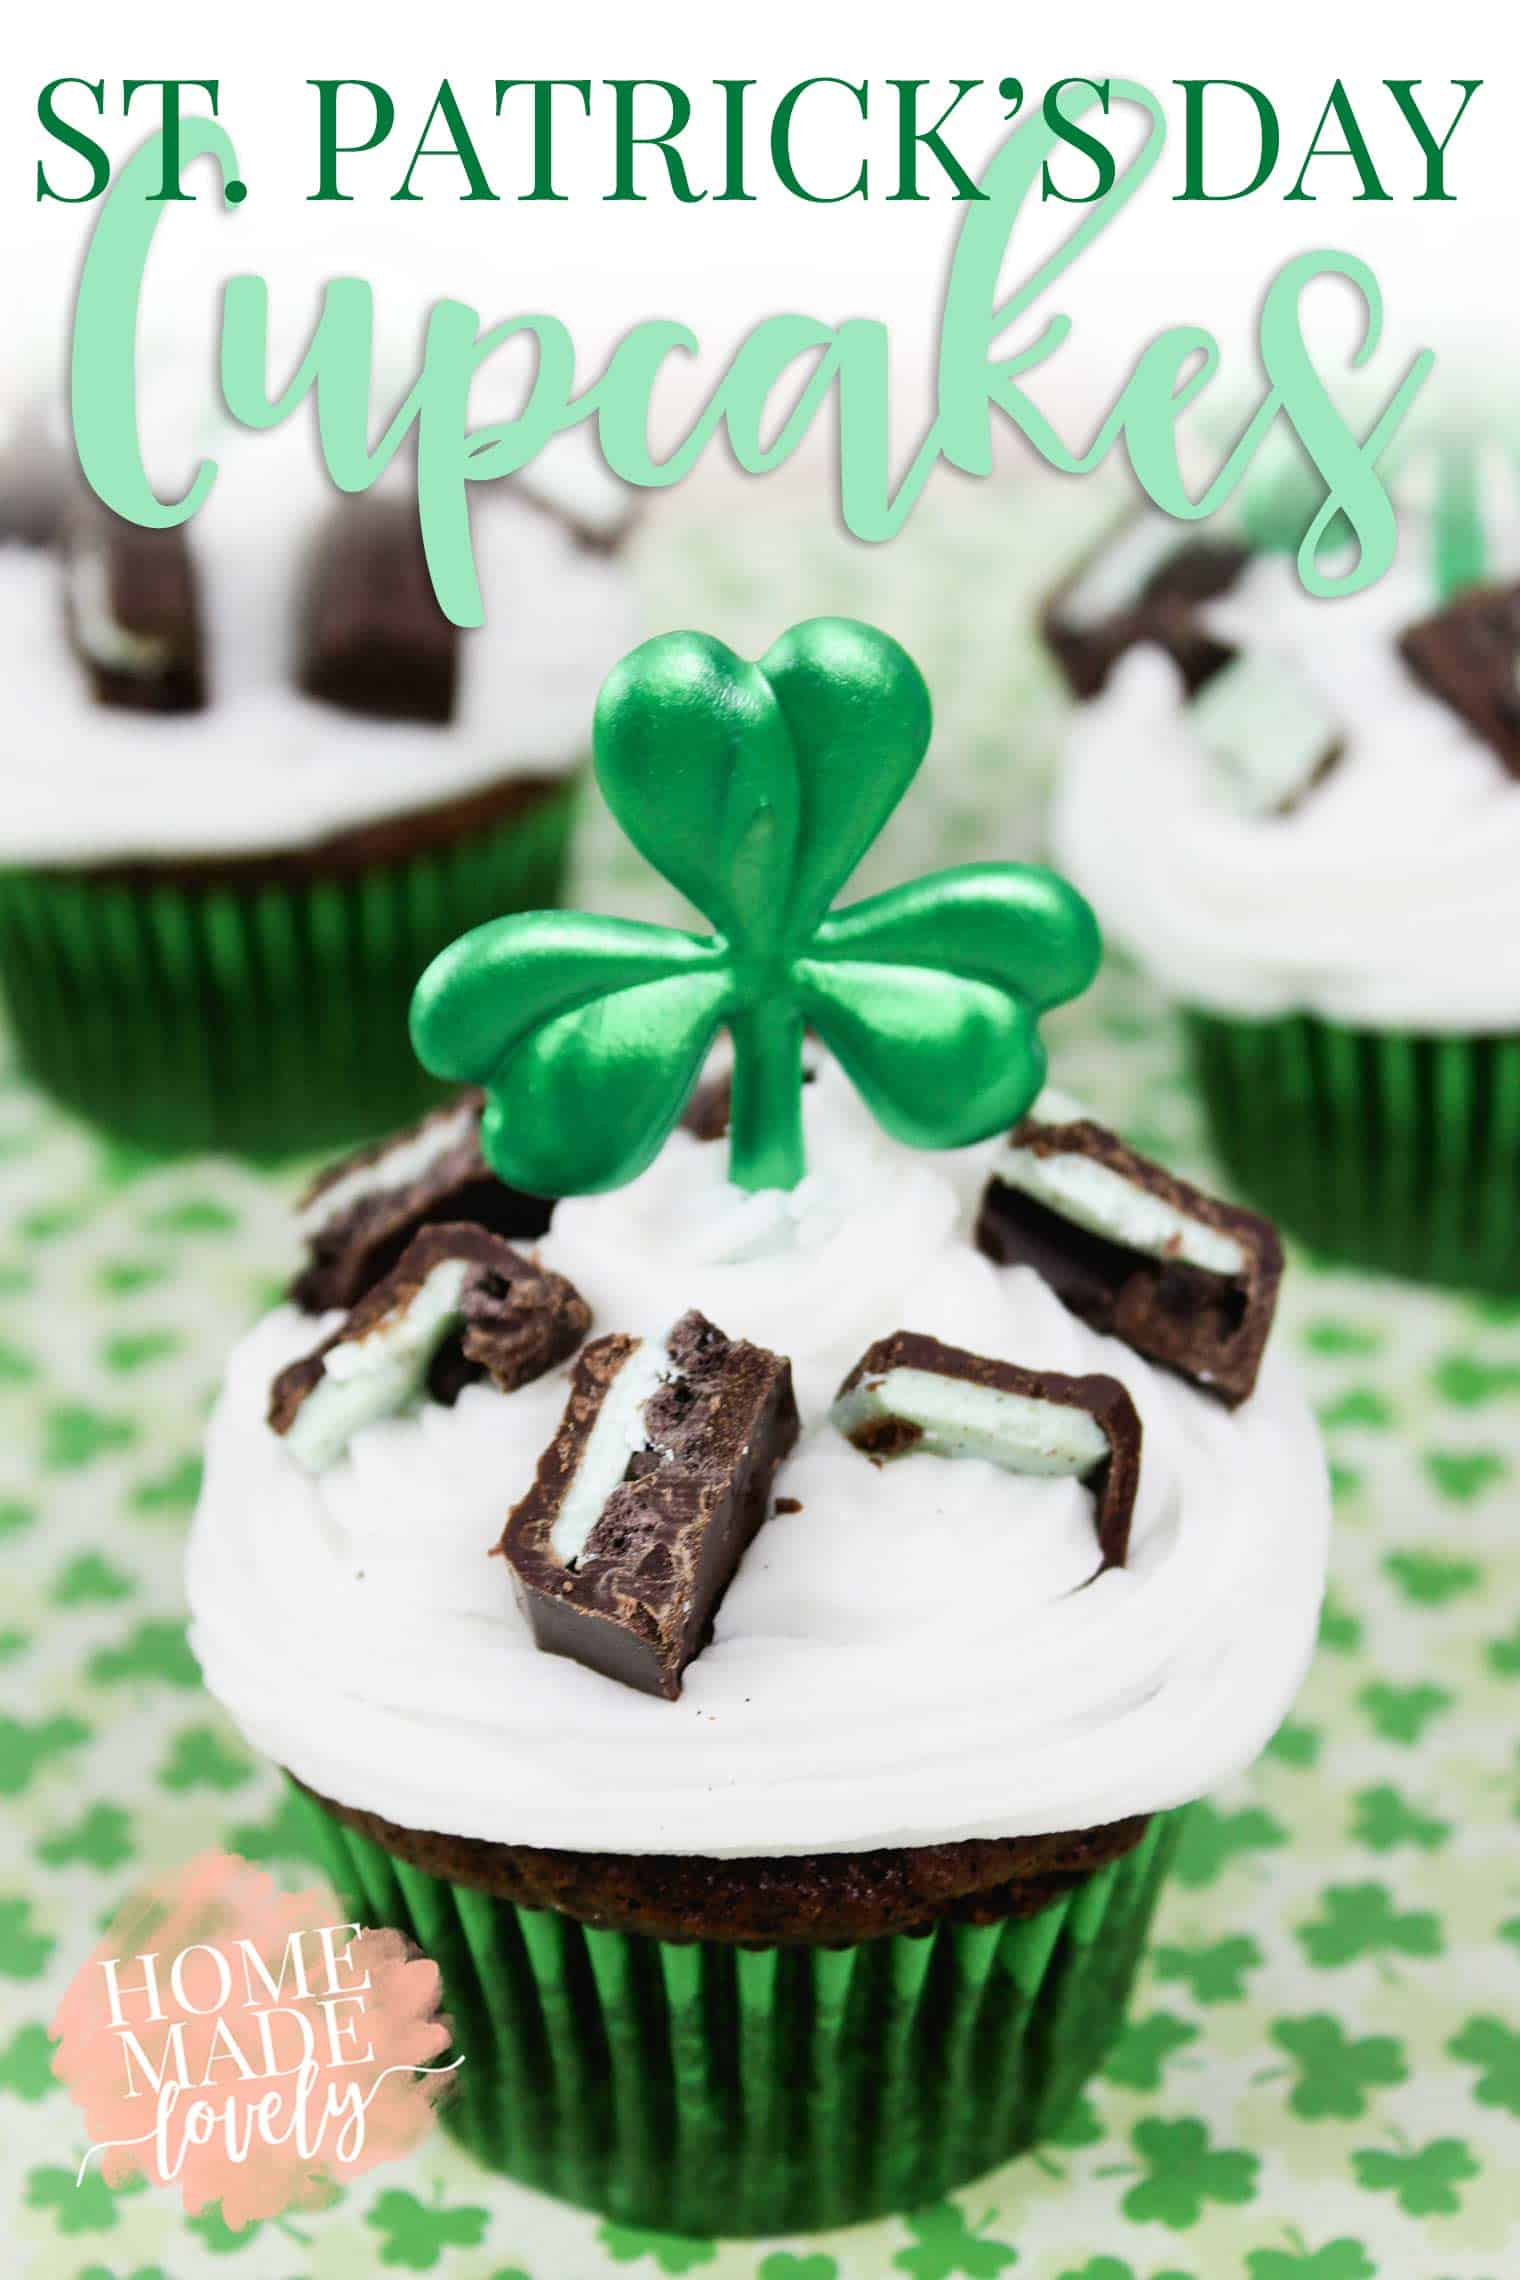 devil's food cupcakes decorated for St. Patrick's Day